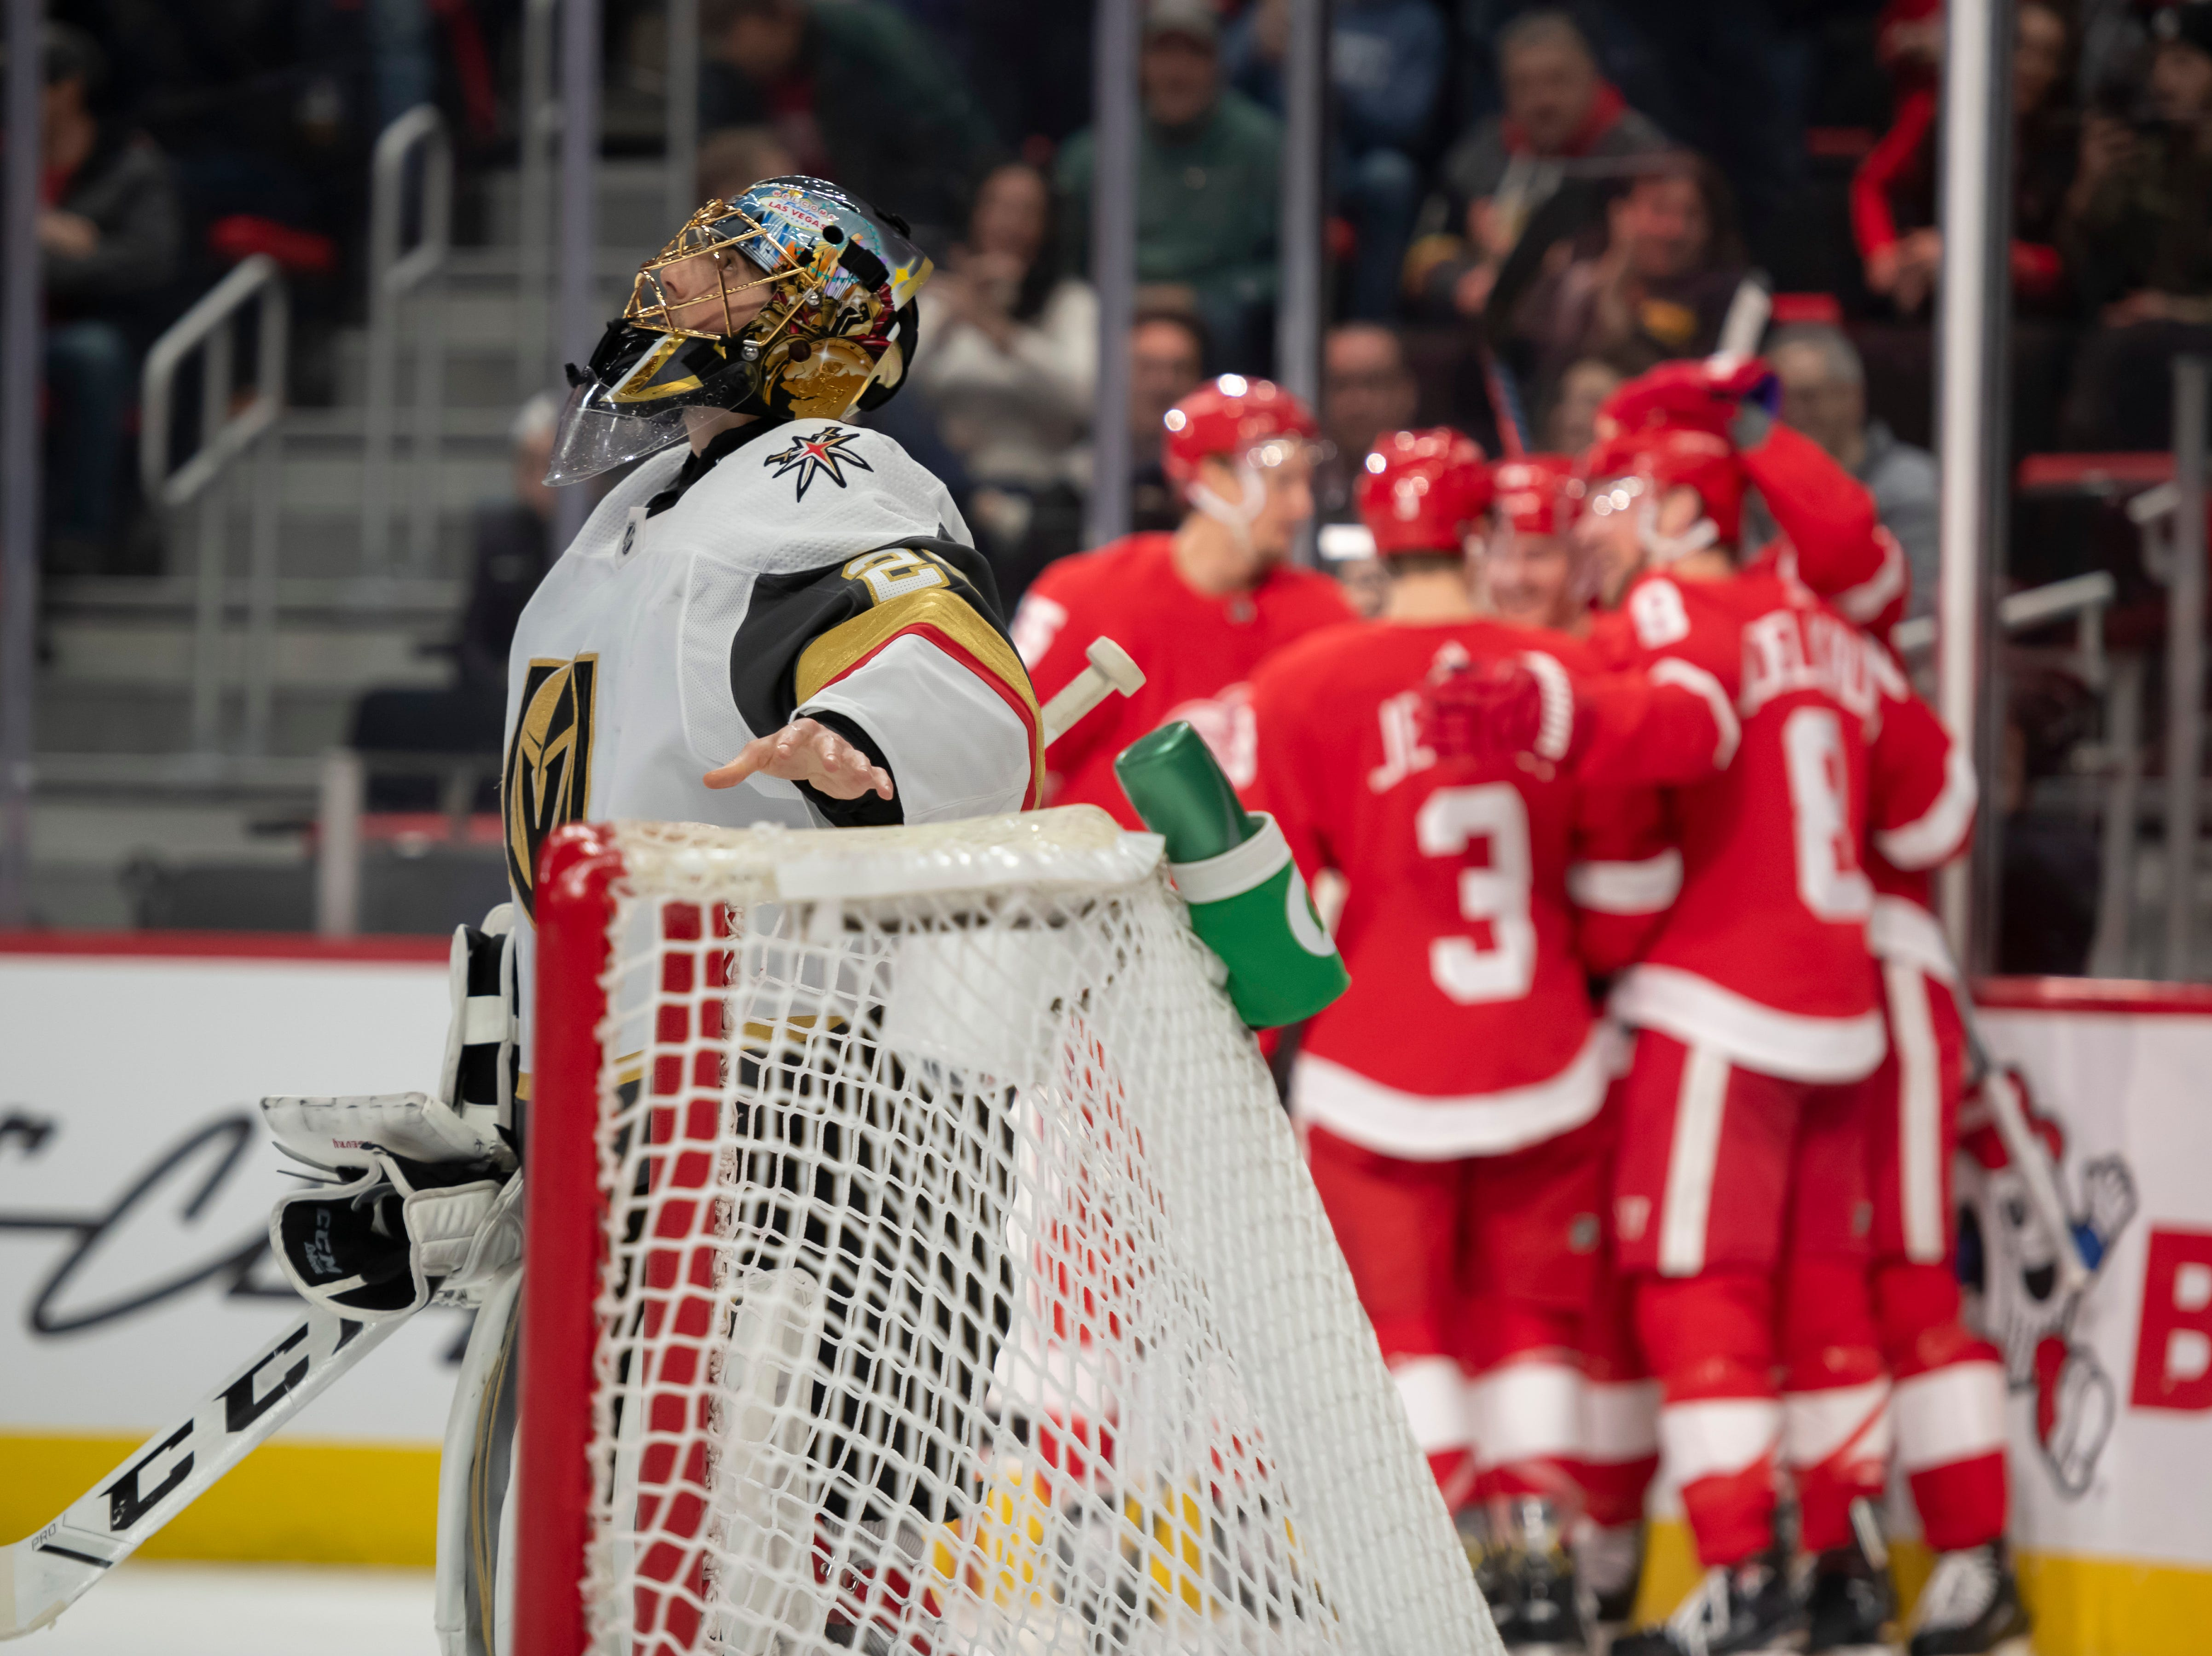 Vegas goaltender Marc-Andre Fleury looks away as Detroit celebrates a goal by center Gustav Nyquist in the first period.